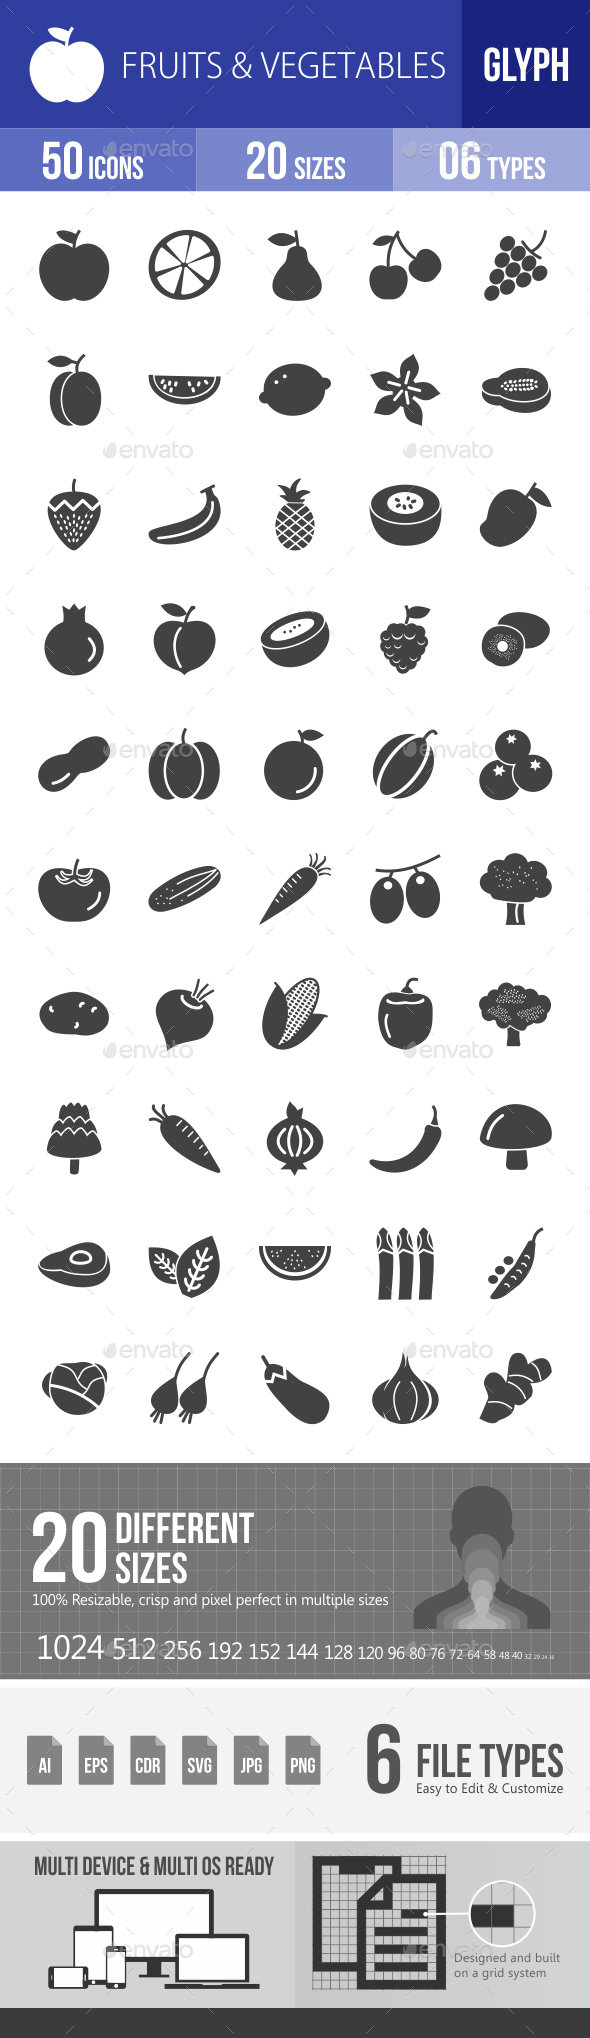 Fruits & Vegetables Glyph Icons - Icons